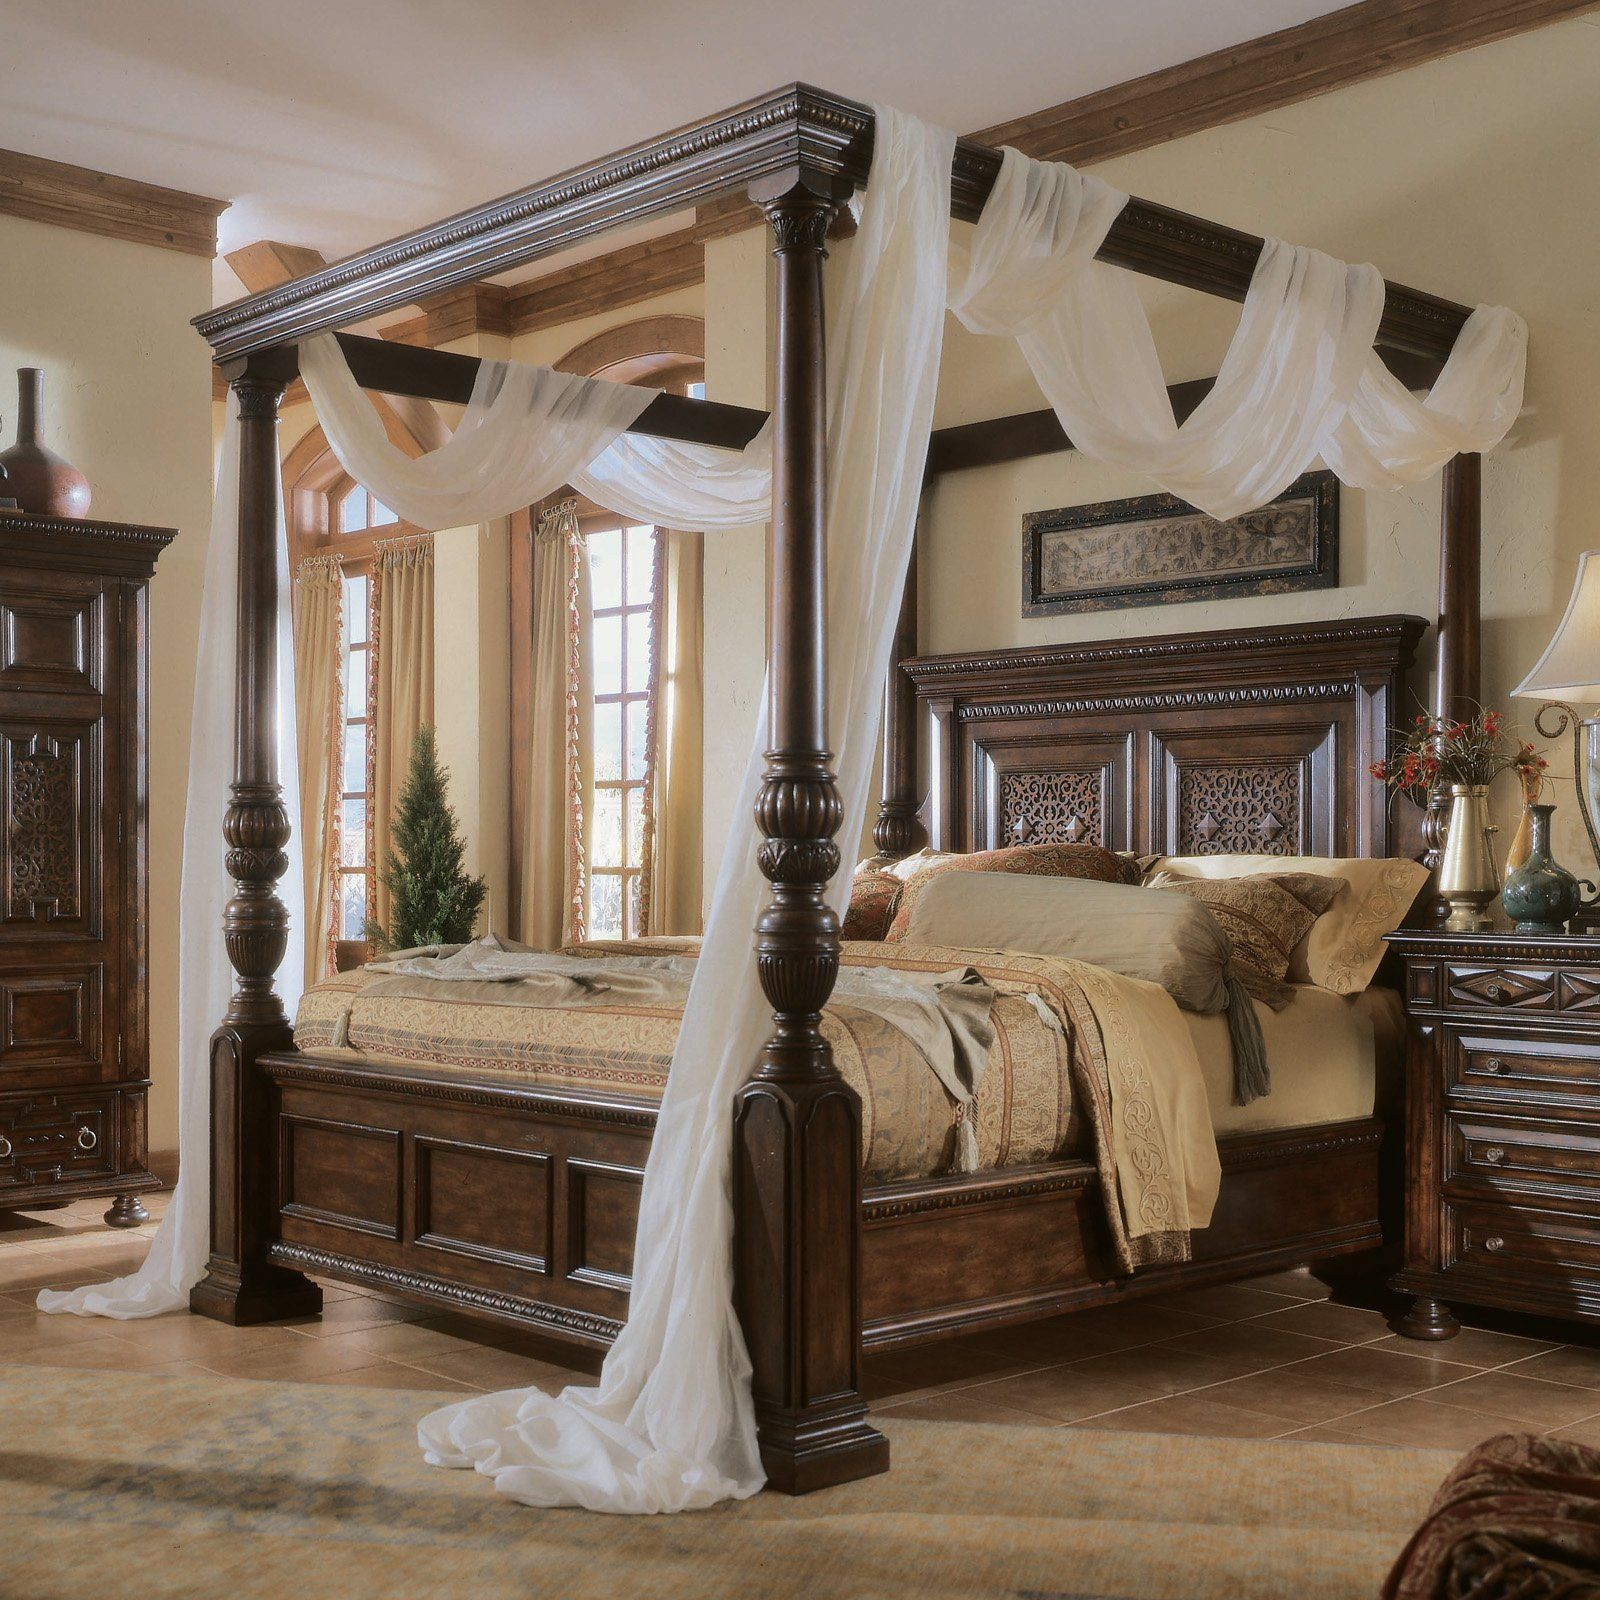 15 most beautiful decorated and designed beds wood - Pictures of canopy beds ...